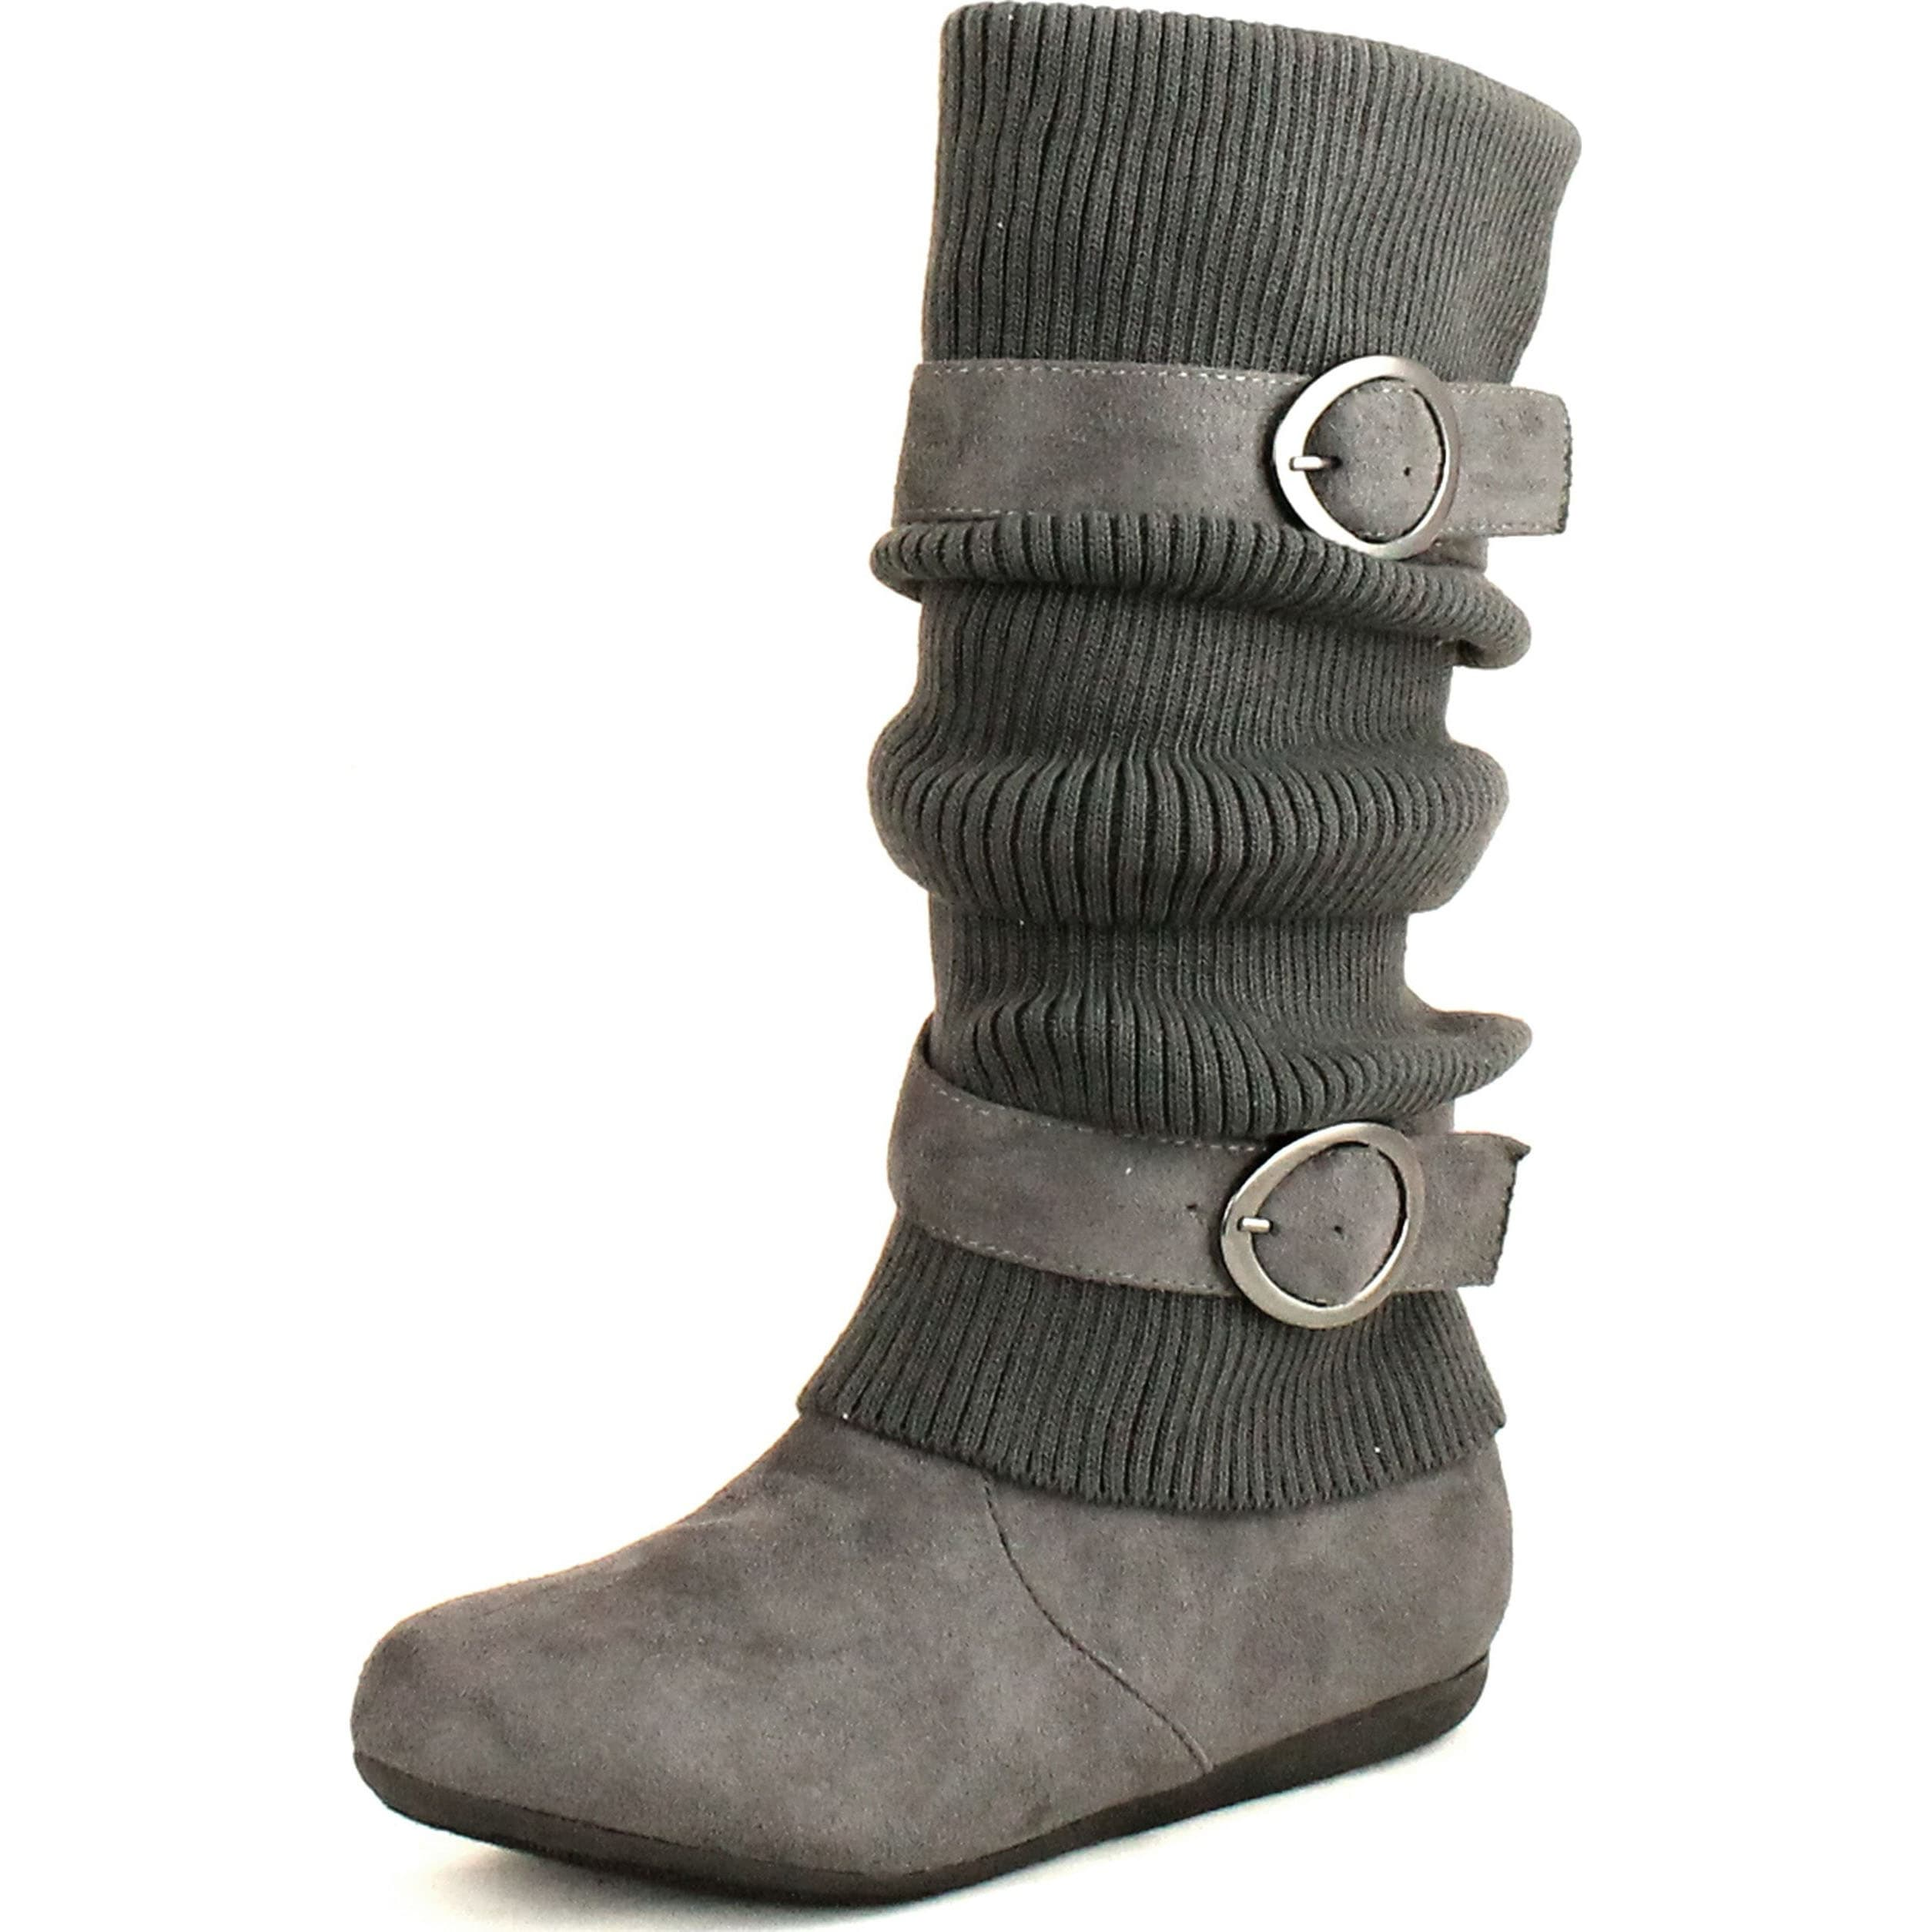 37d78970864 Buy Top Moda Women s Boots Online at Overstock